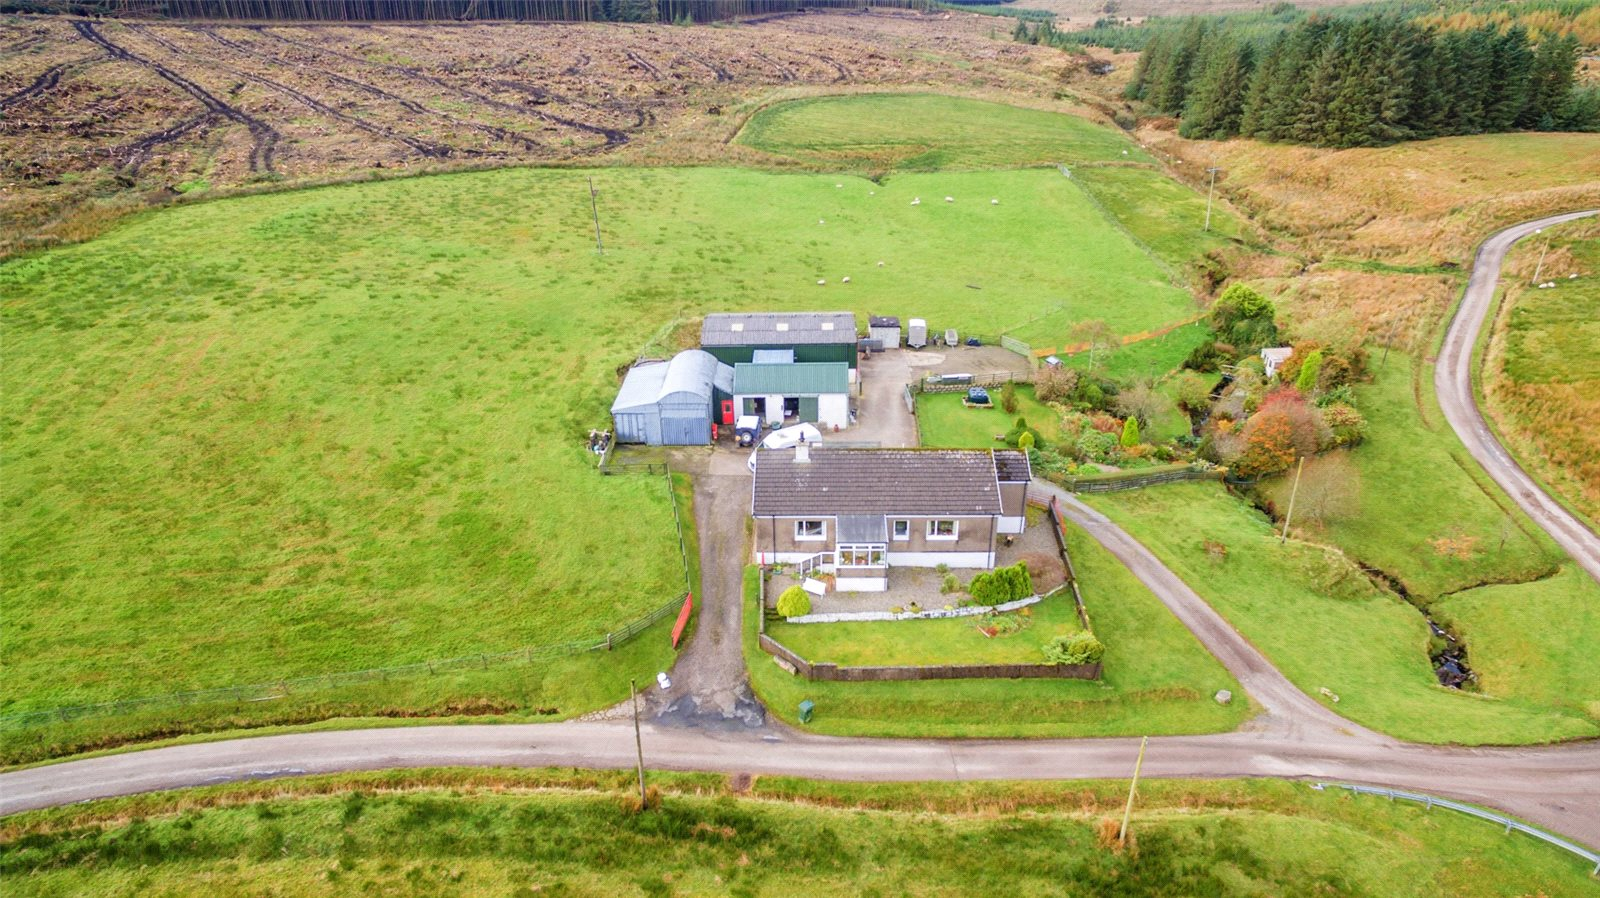 4 Bedrooms House for sale in Gobagrennan, Campbeltown, Argyll and Bute, PA28